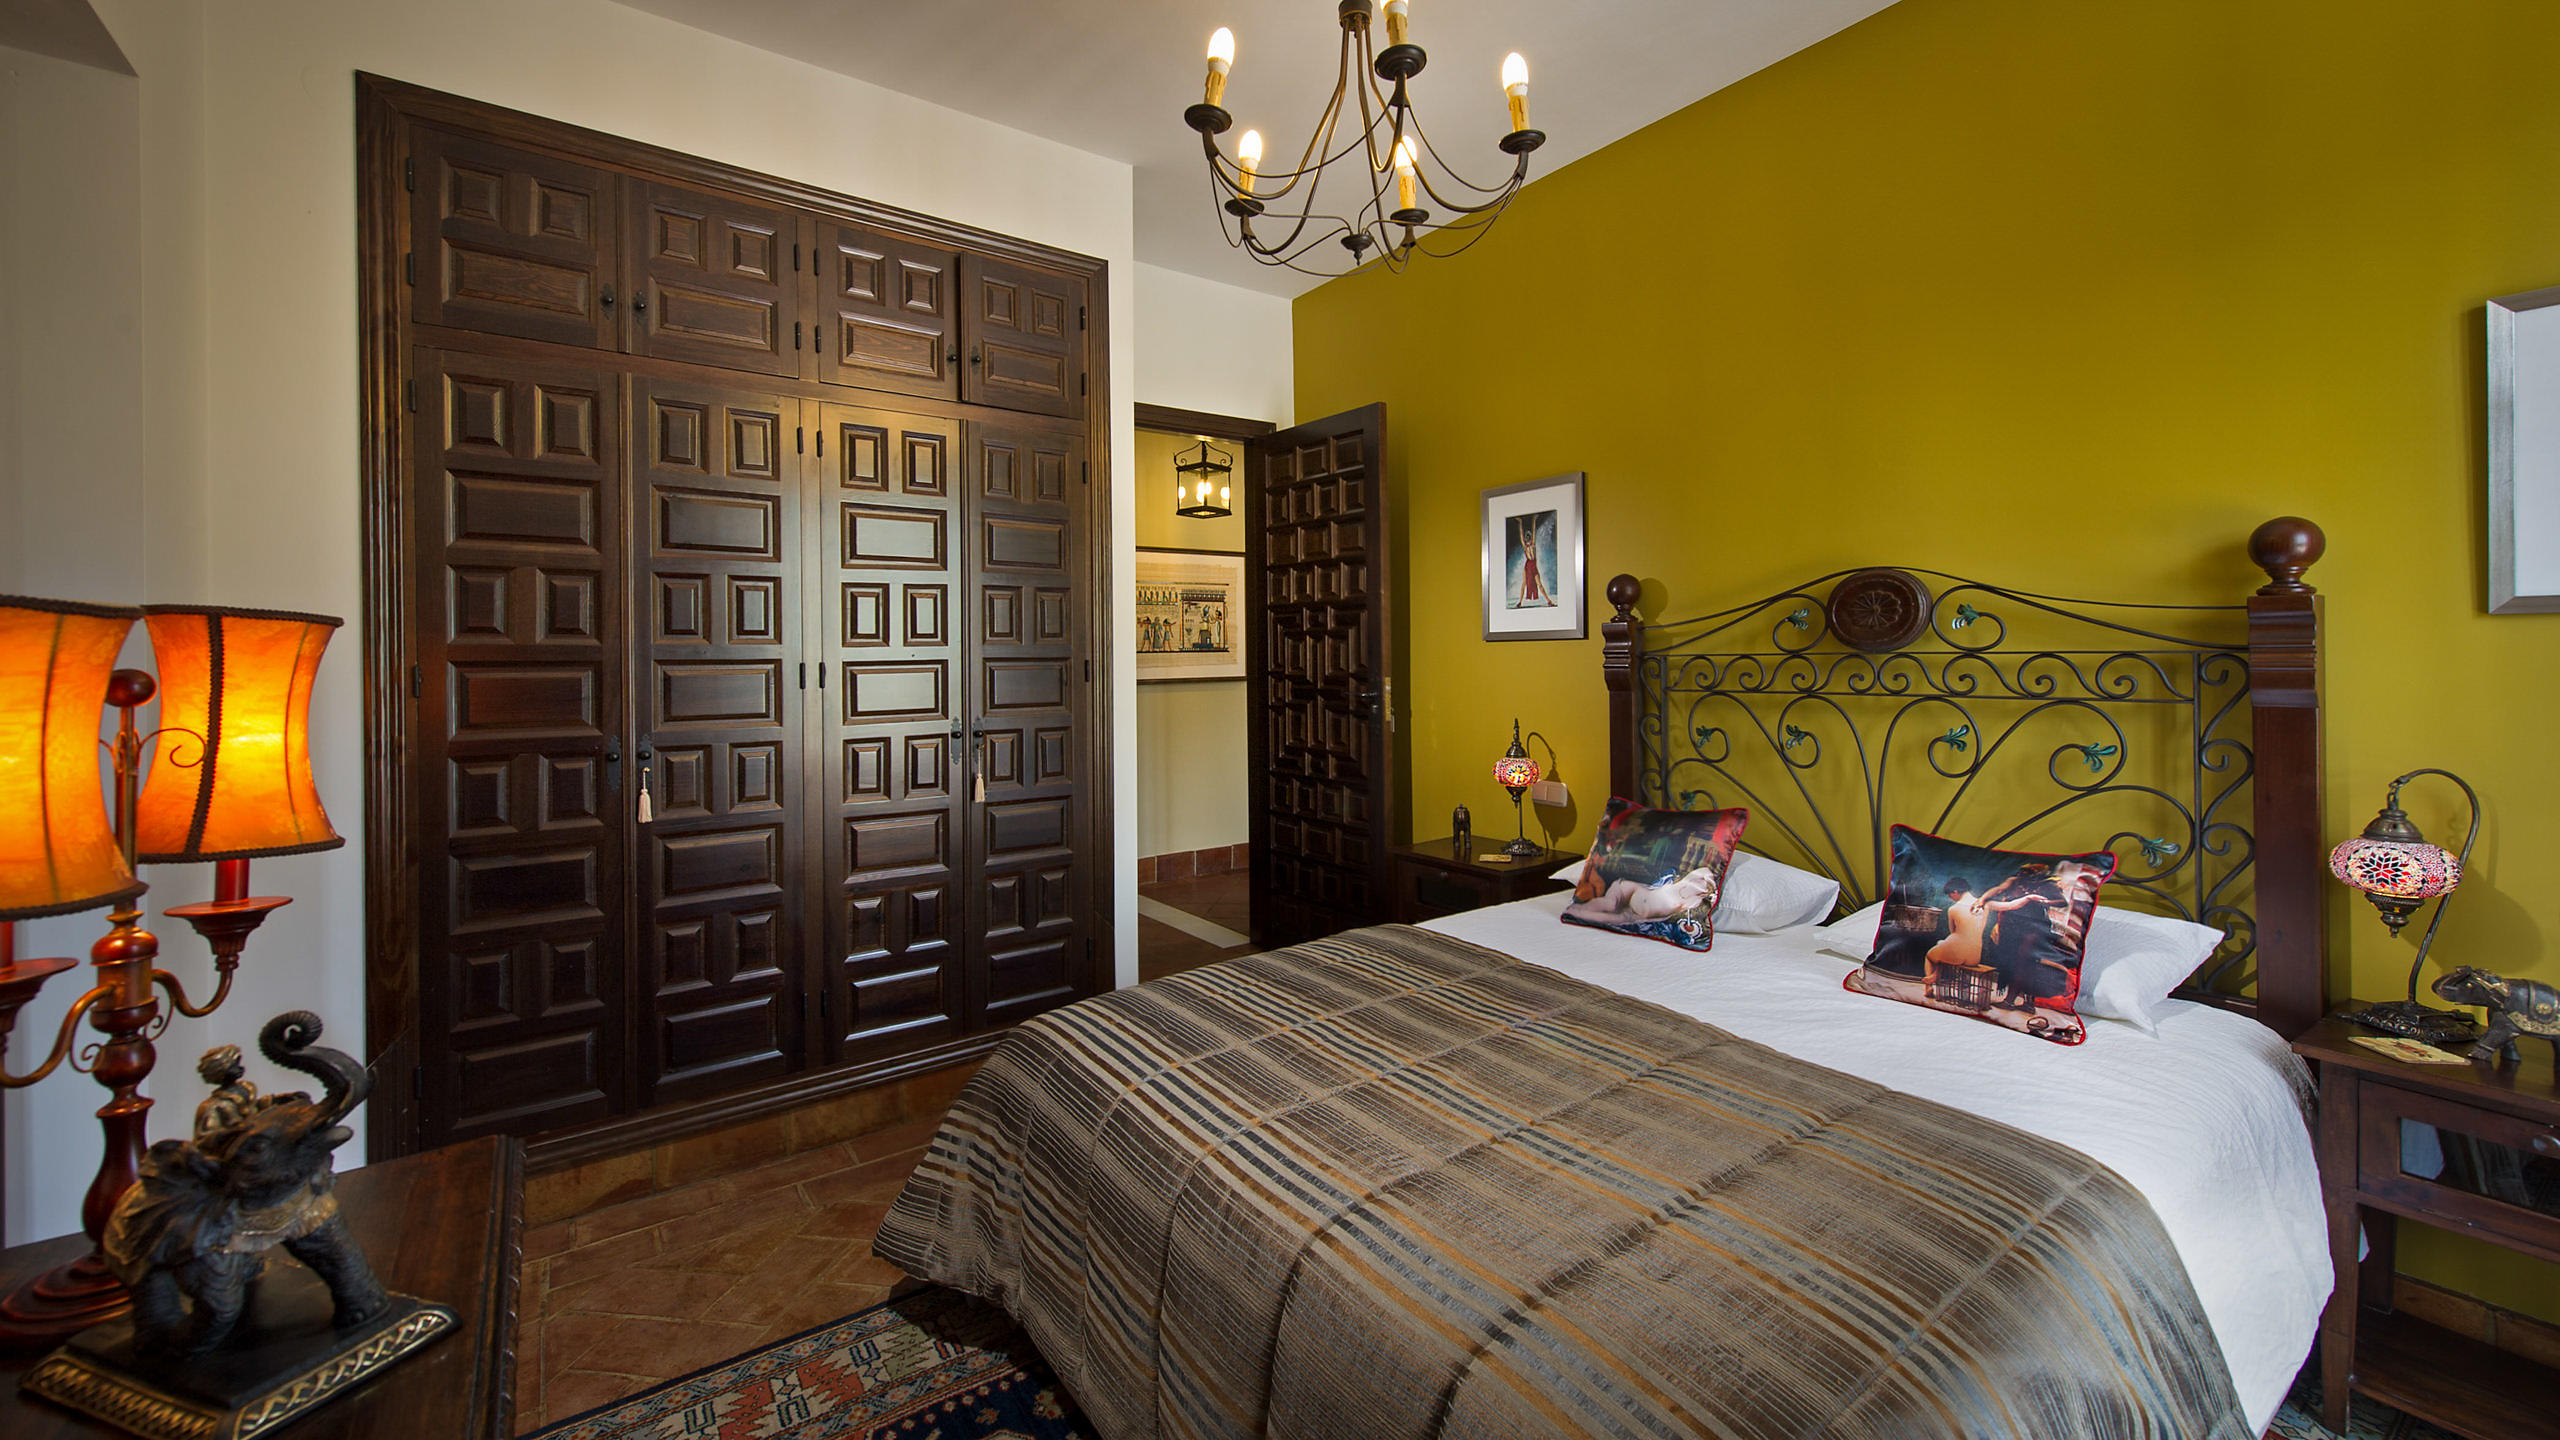 Luxury Villa Hotel Bedroom Interior in Andalucia, Spain